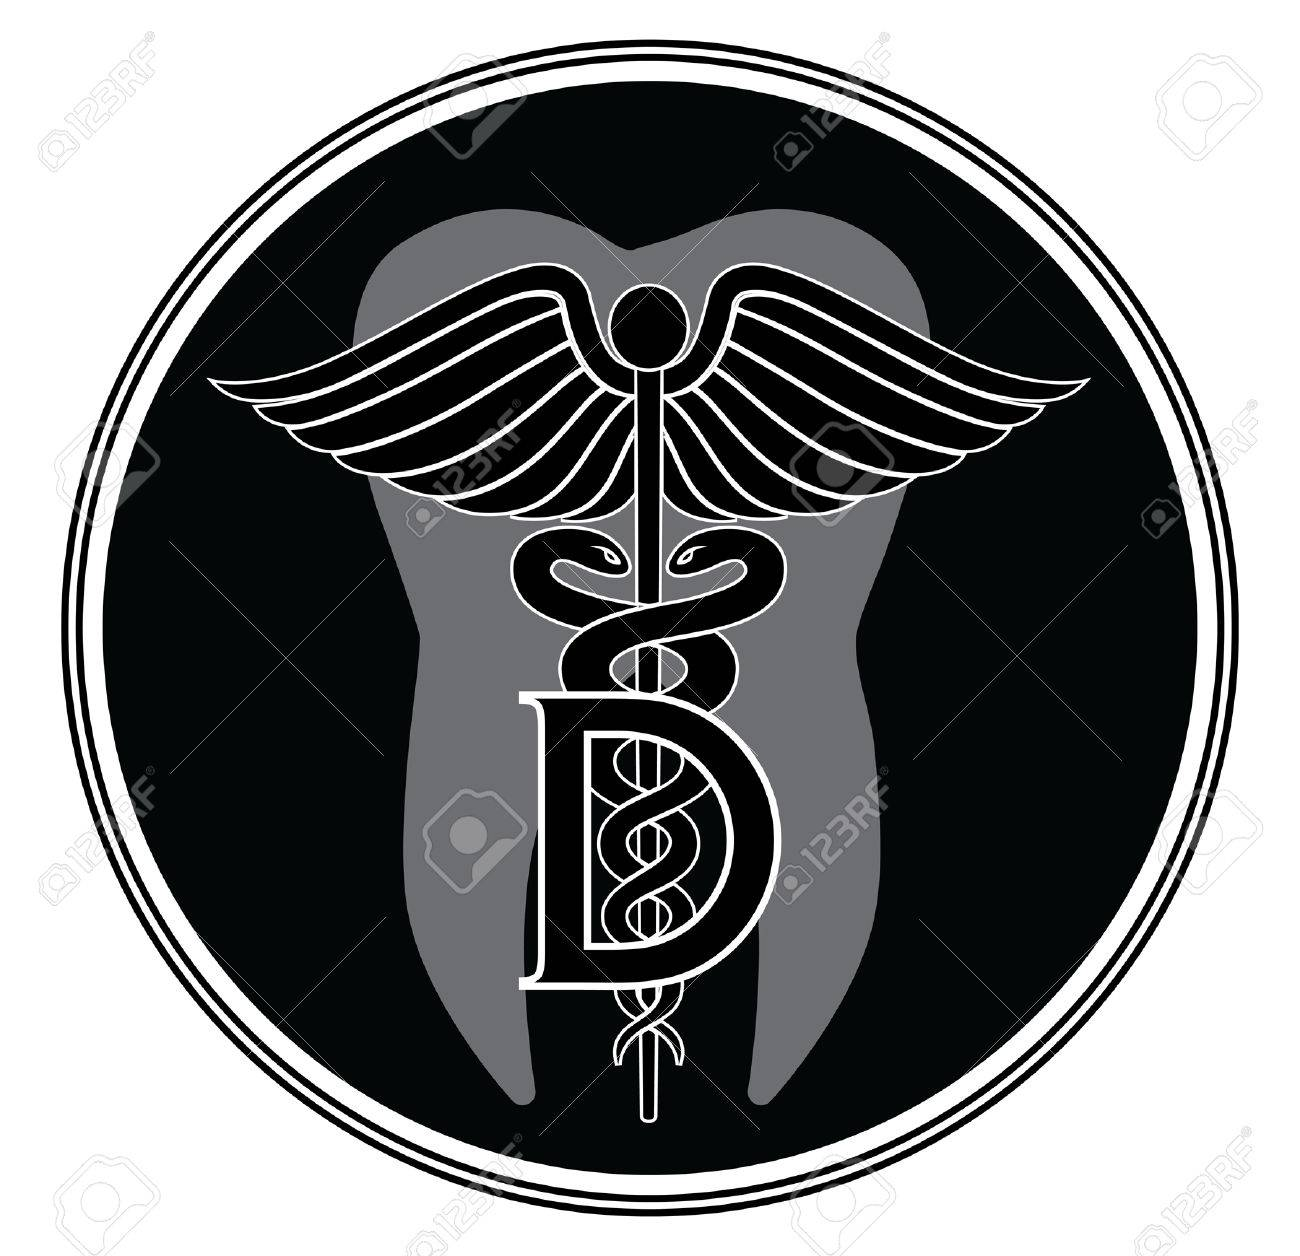 Dentist Medical Symbol Graphic Style Royalty Free Cliparts ...